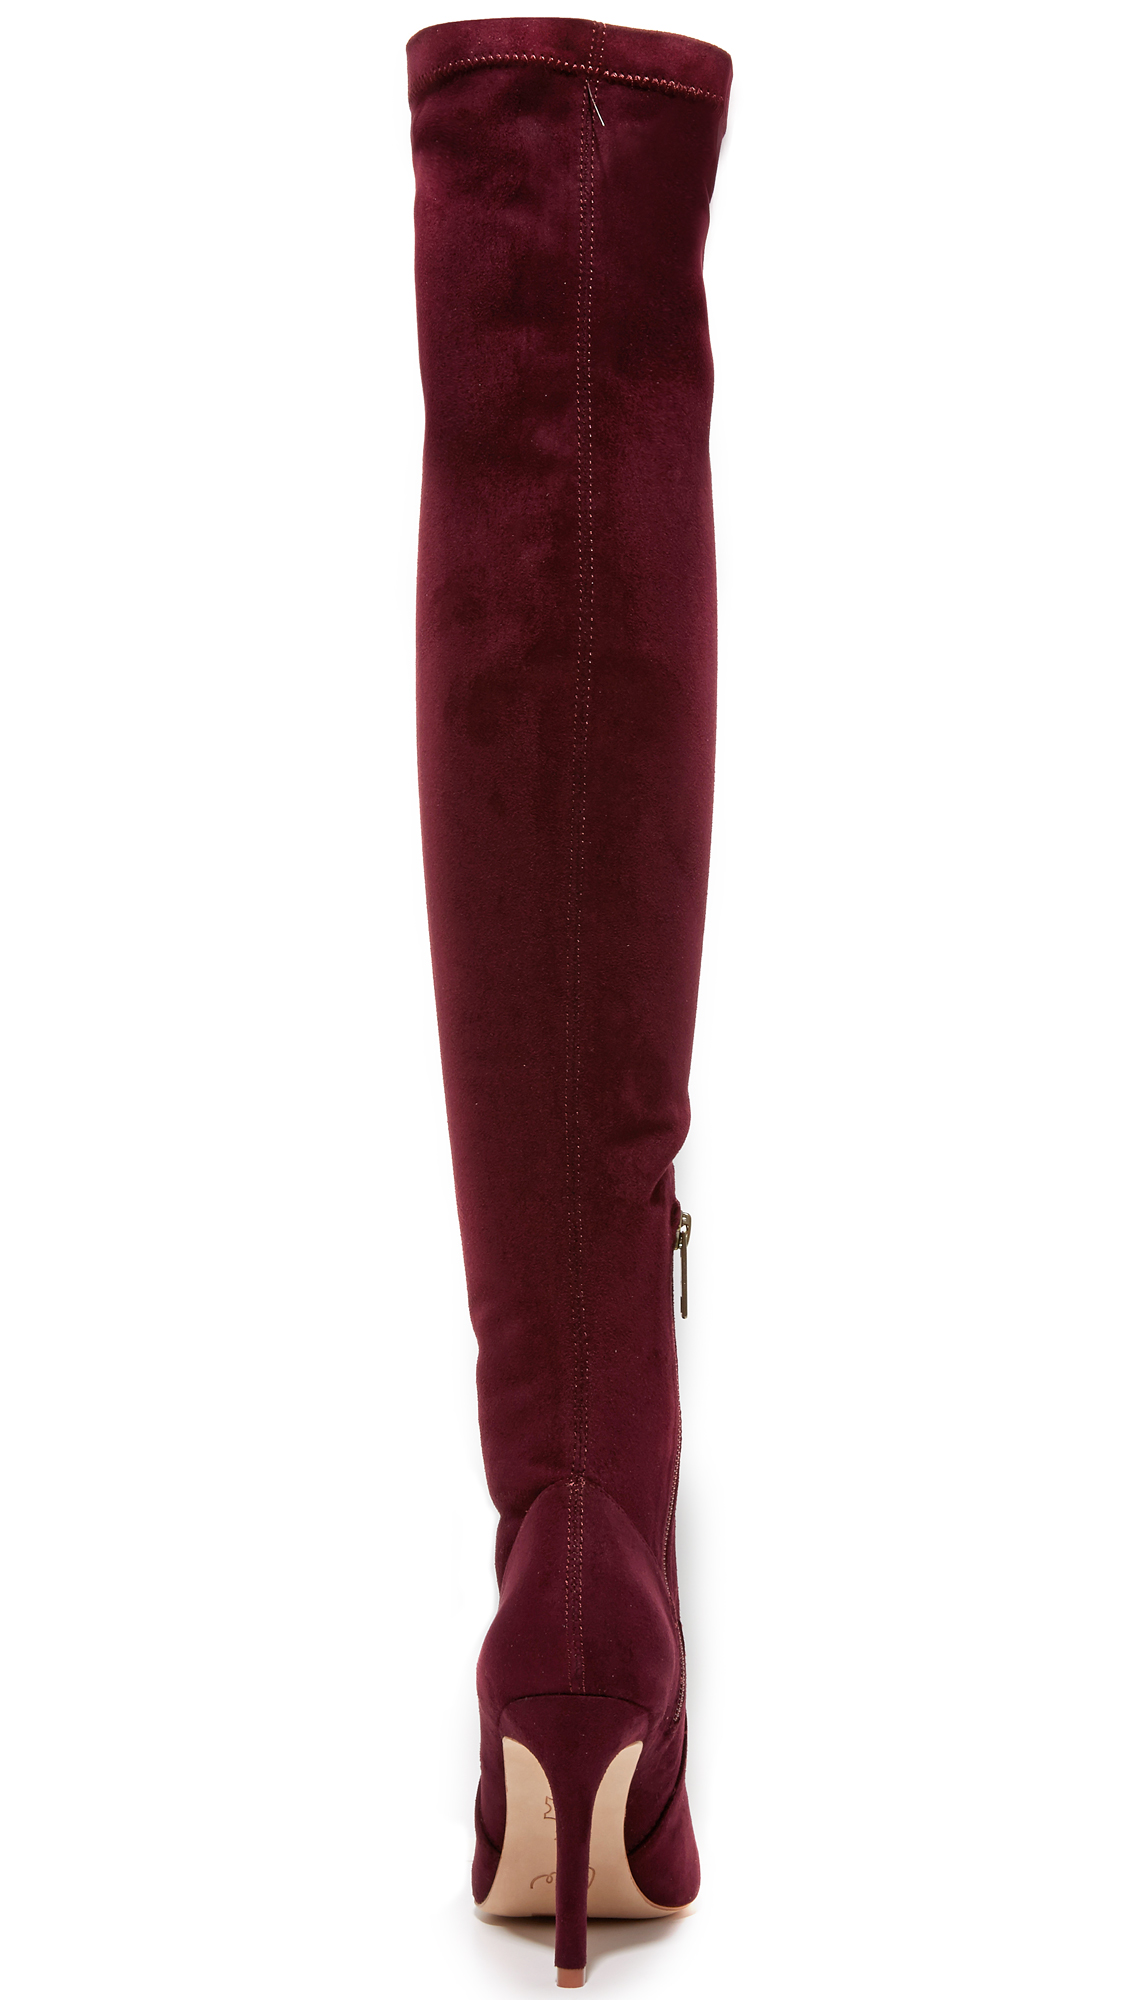 0a32abcb4a7 Joie Jemina B Over The Knee Boots